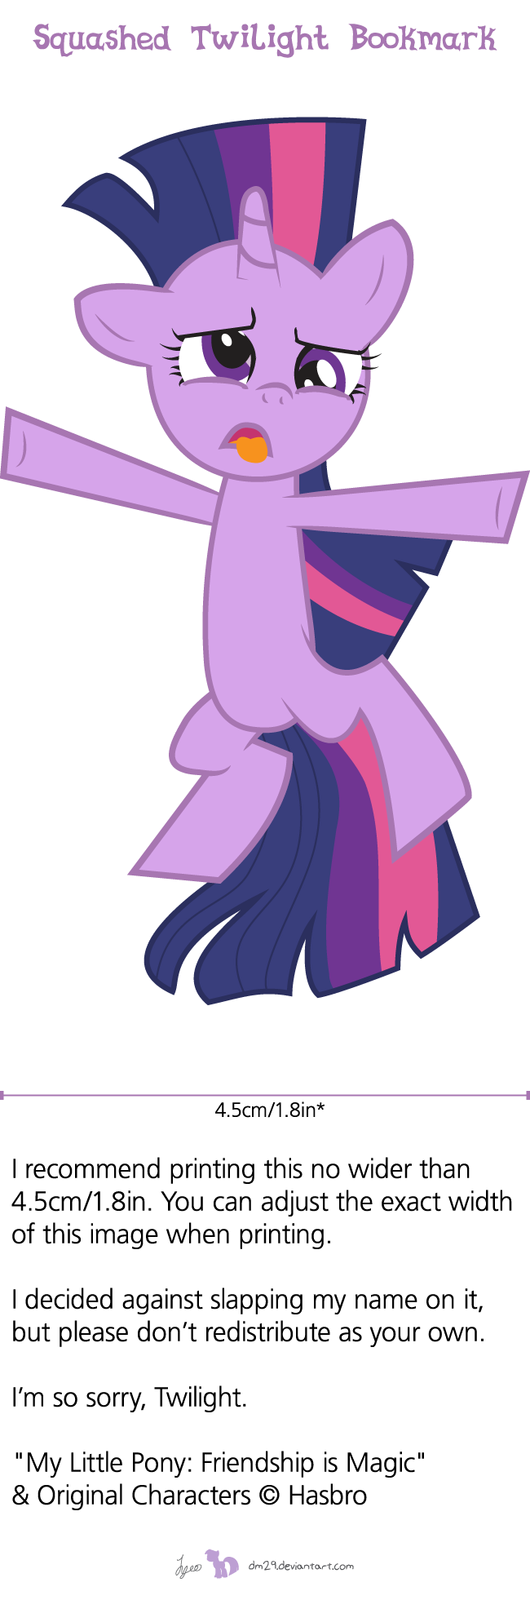 Smooshed Twilight